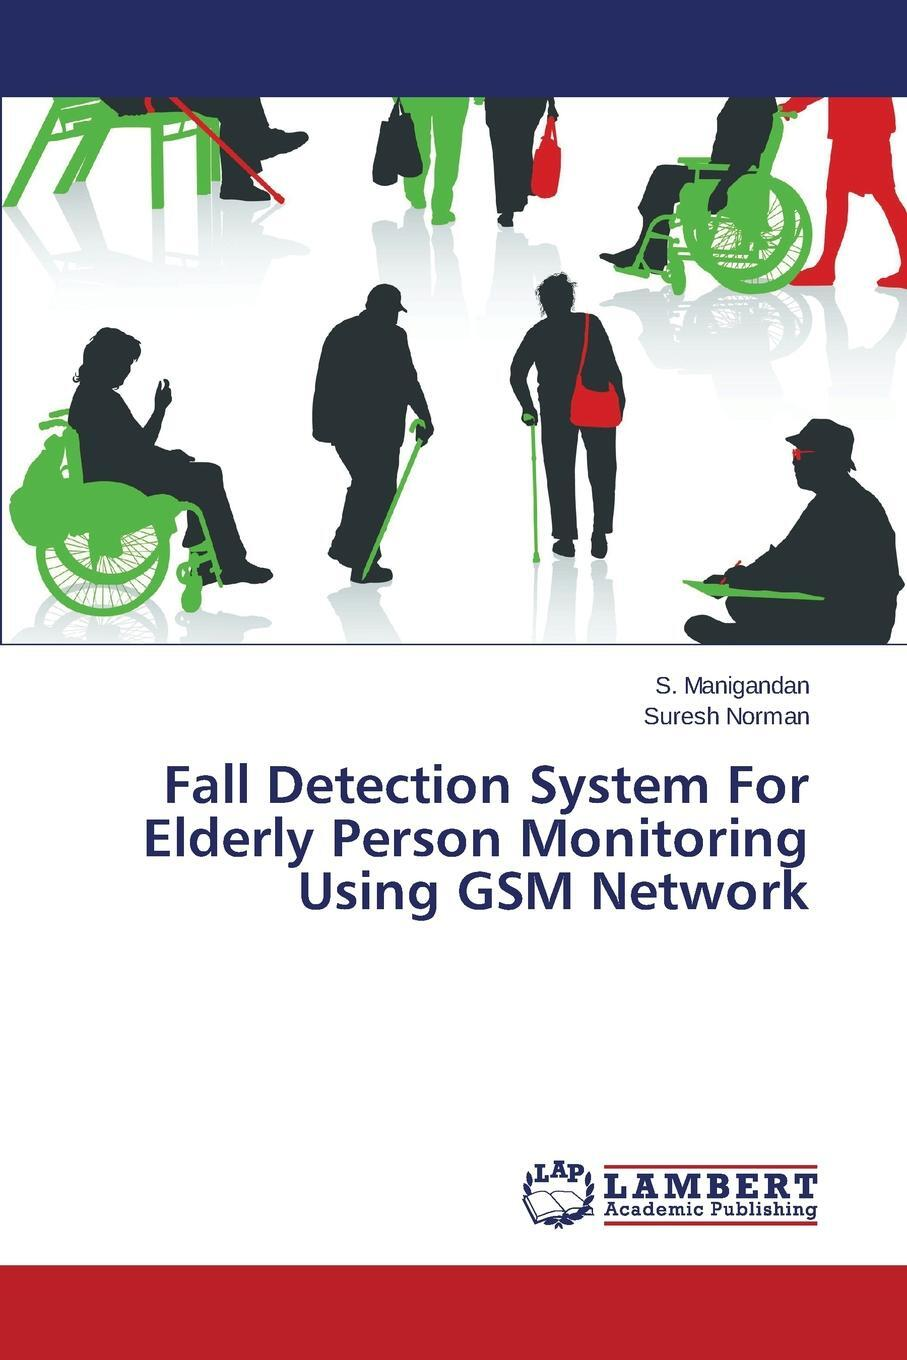 Fall Detection System For Elderly Person Monitoring Using GSM Network